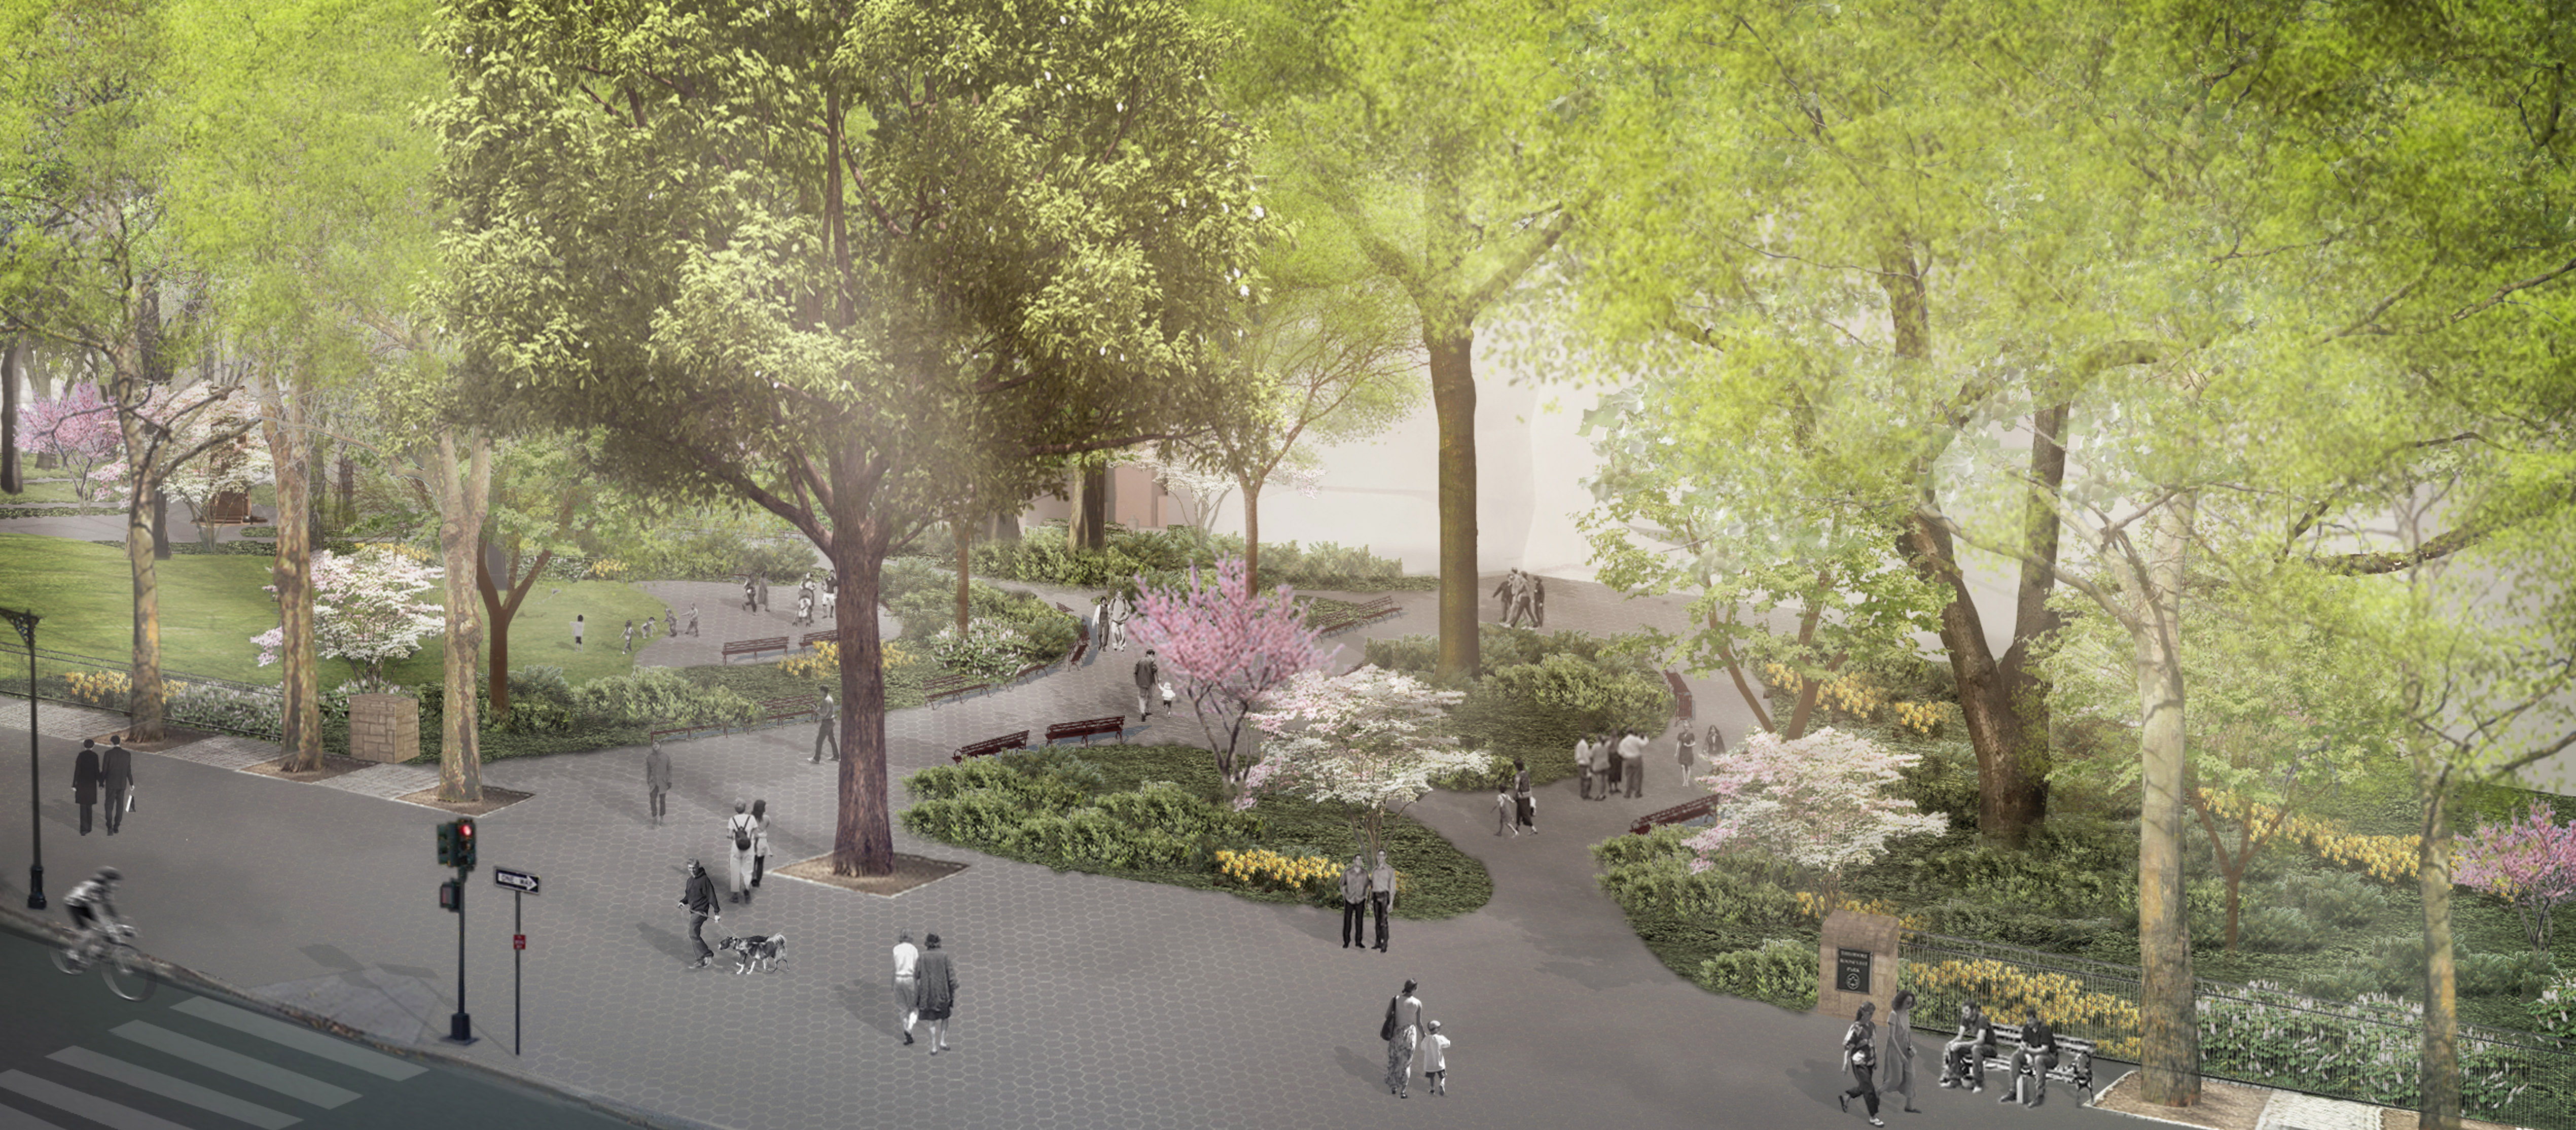 Rendering from tree-top level looks down a visitors strolling, sitting on benches, and enjoying the paved park area among flowering trees.